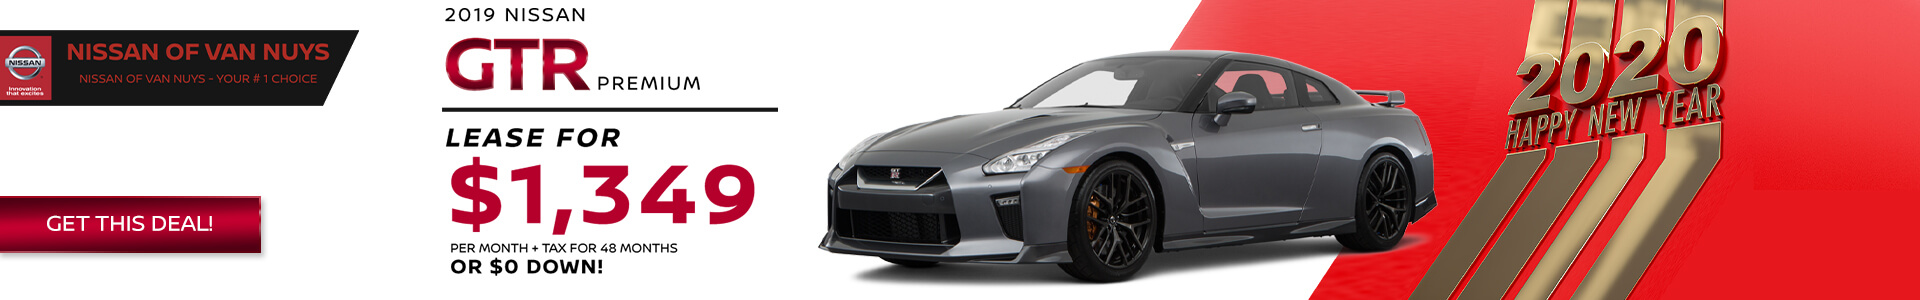 2019 Nissan GTR - Lease for $1349